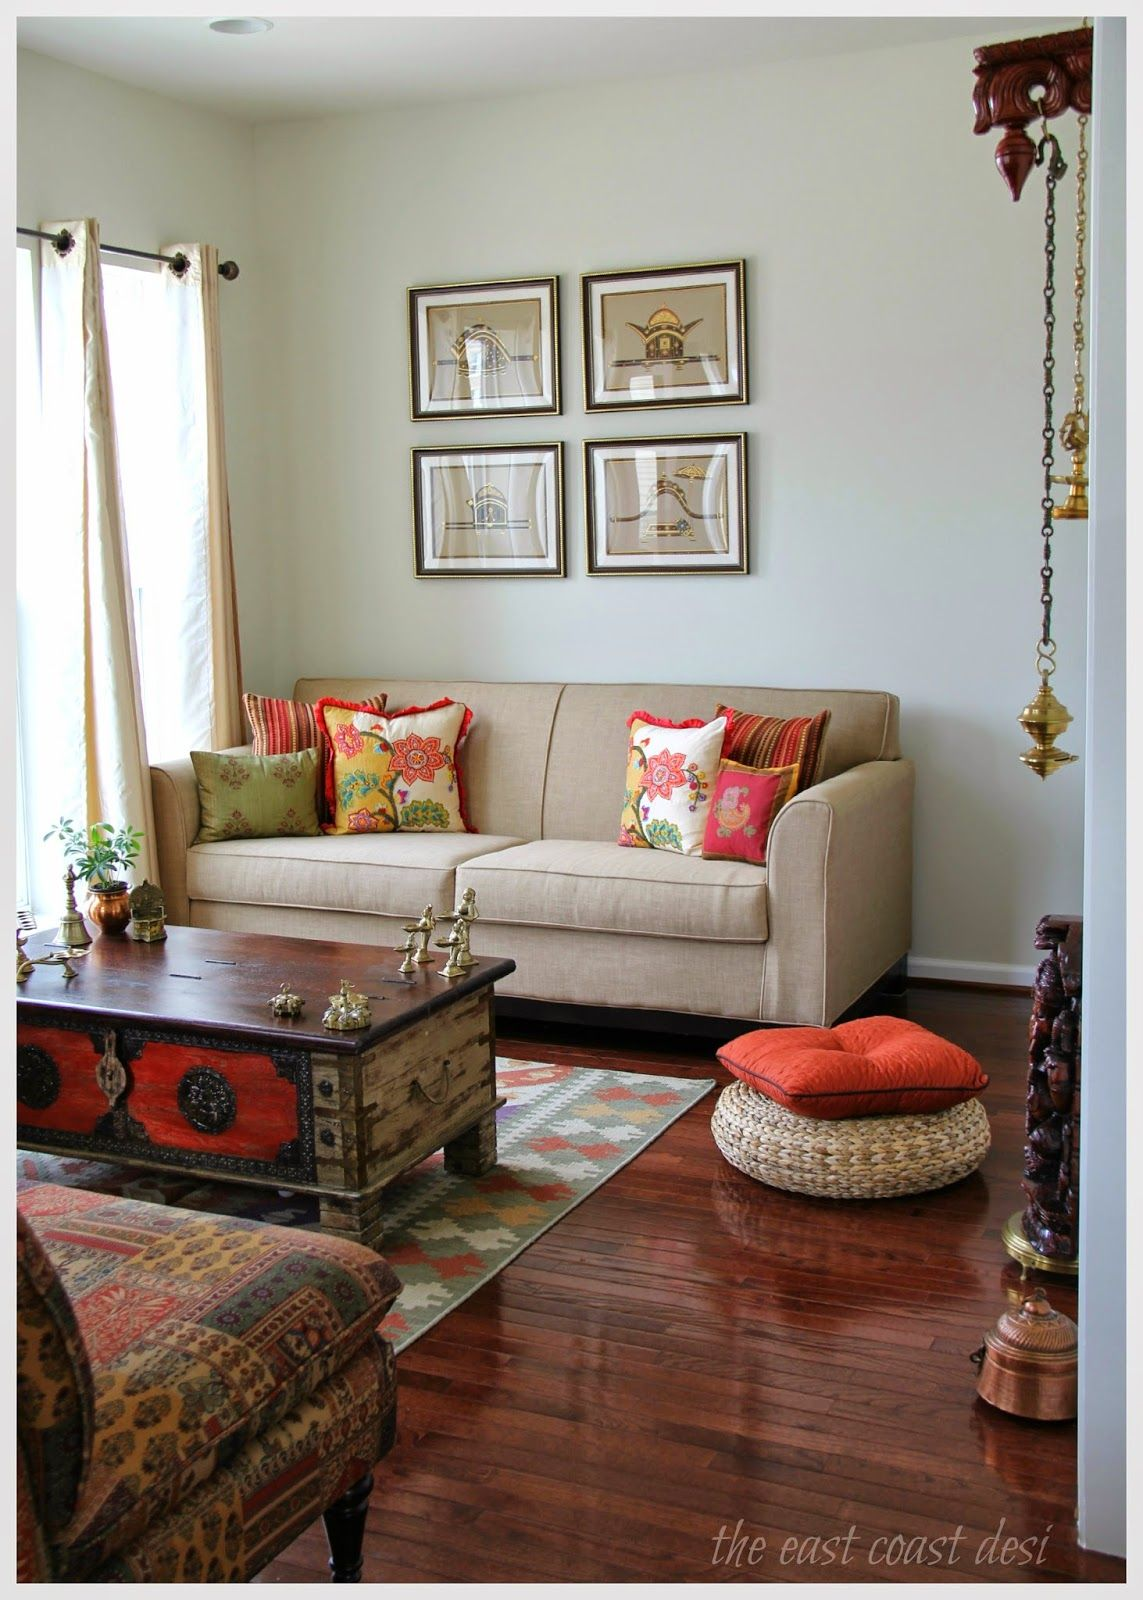 This is exactly how my drawing room will look like exactly like this decoracion casa - Indian home decor online style ...